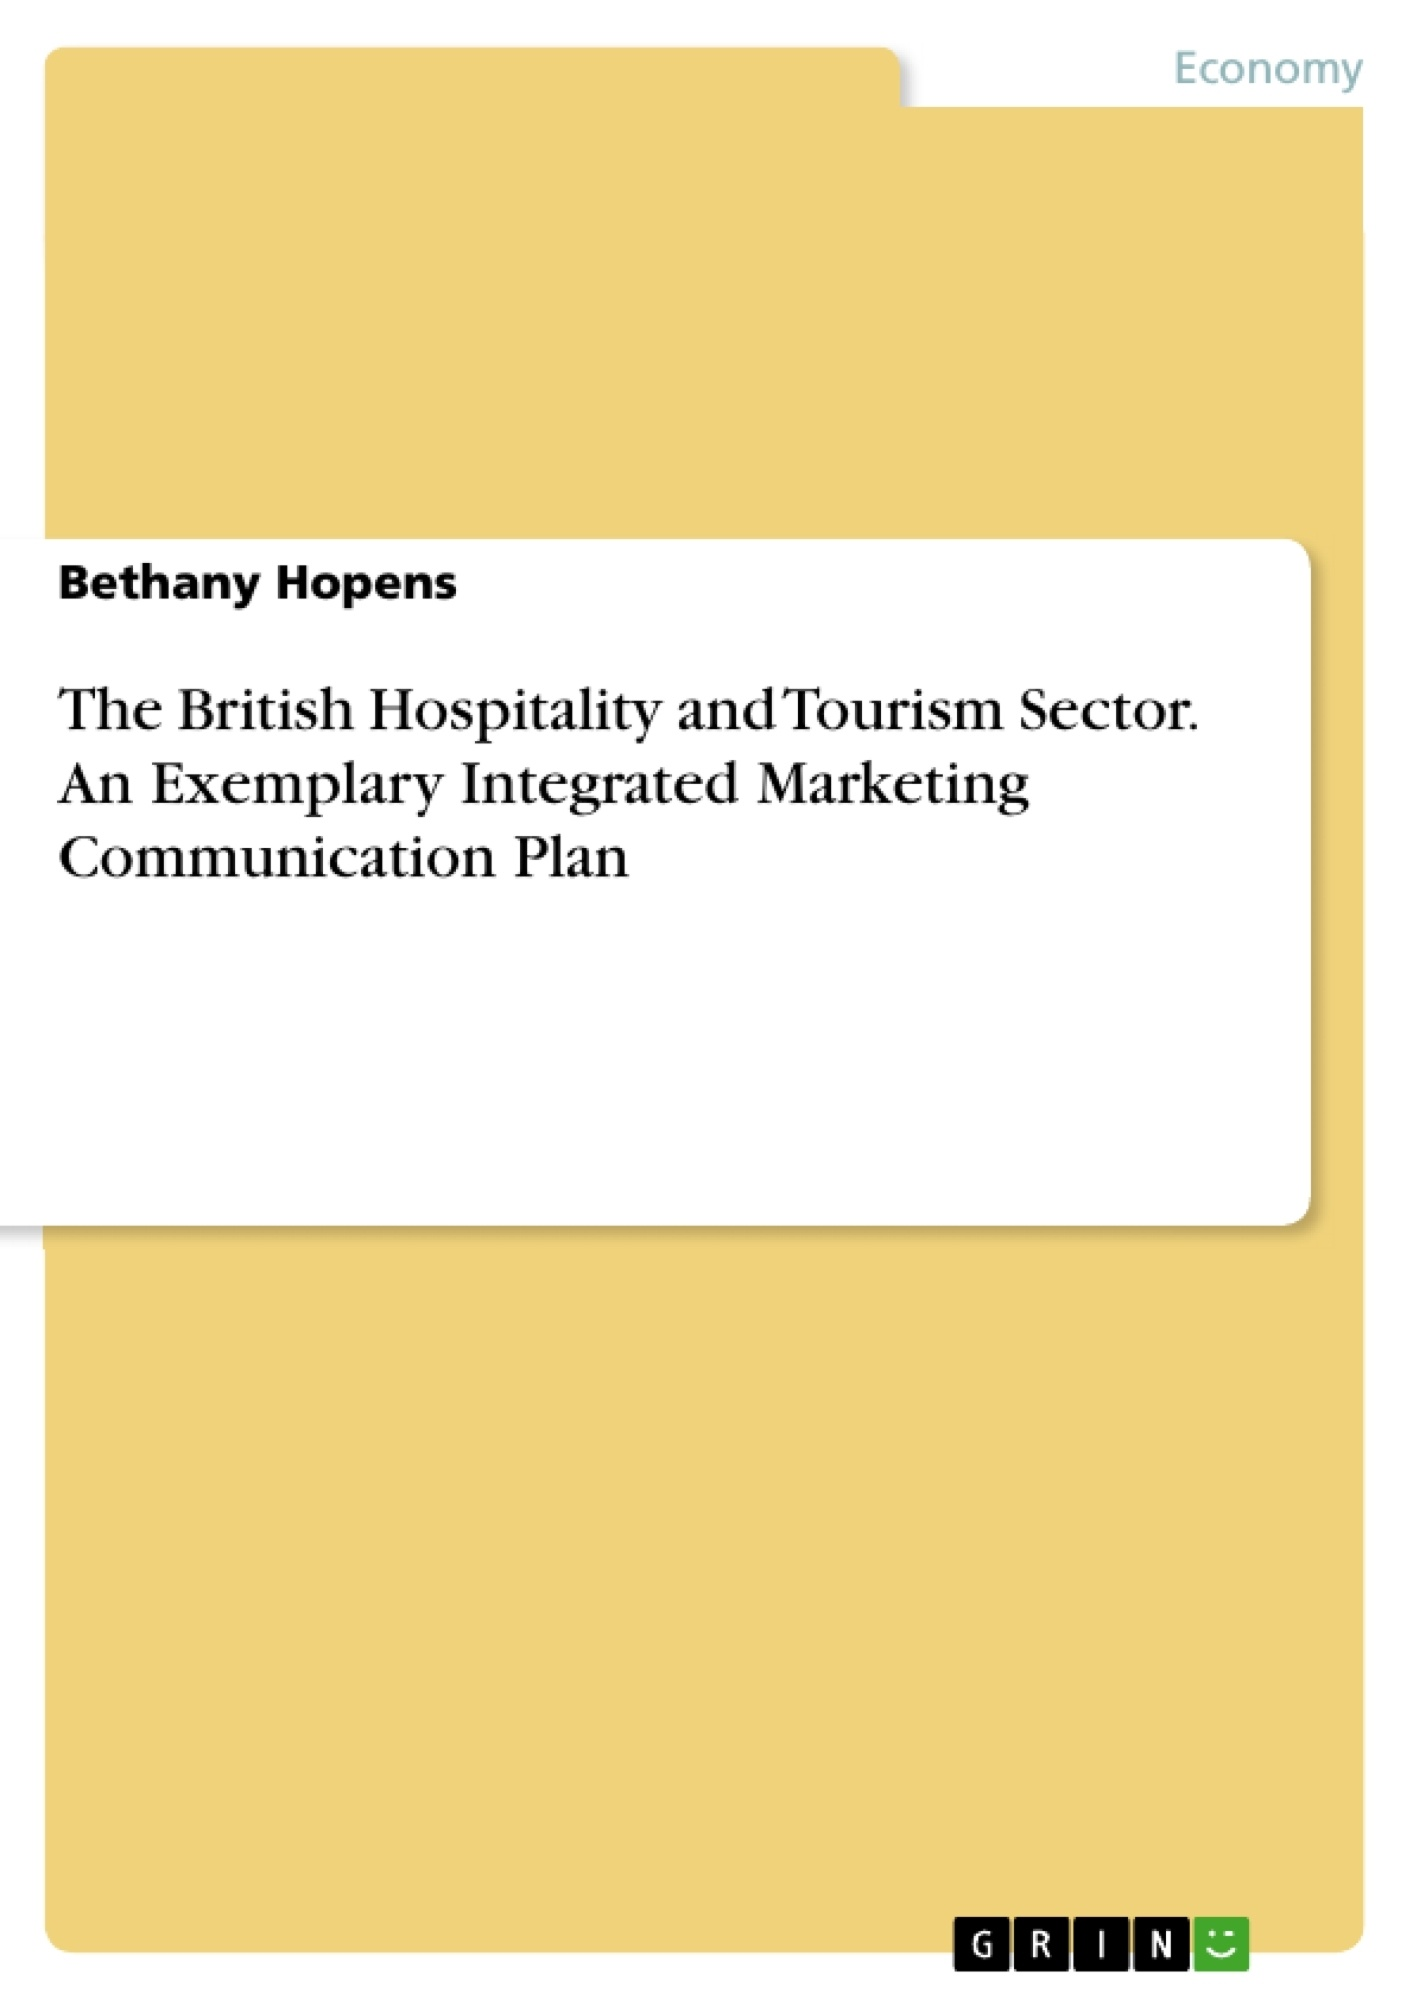 Title: The British Hospitality and Tourism Sector. An Exemplary Integrated Marketing Communication Plan